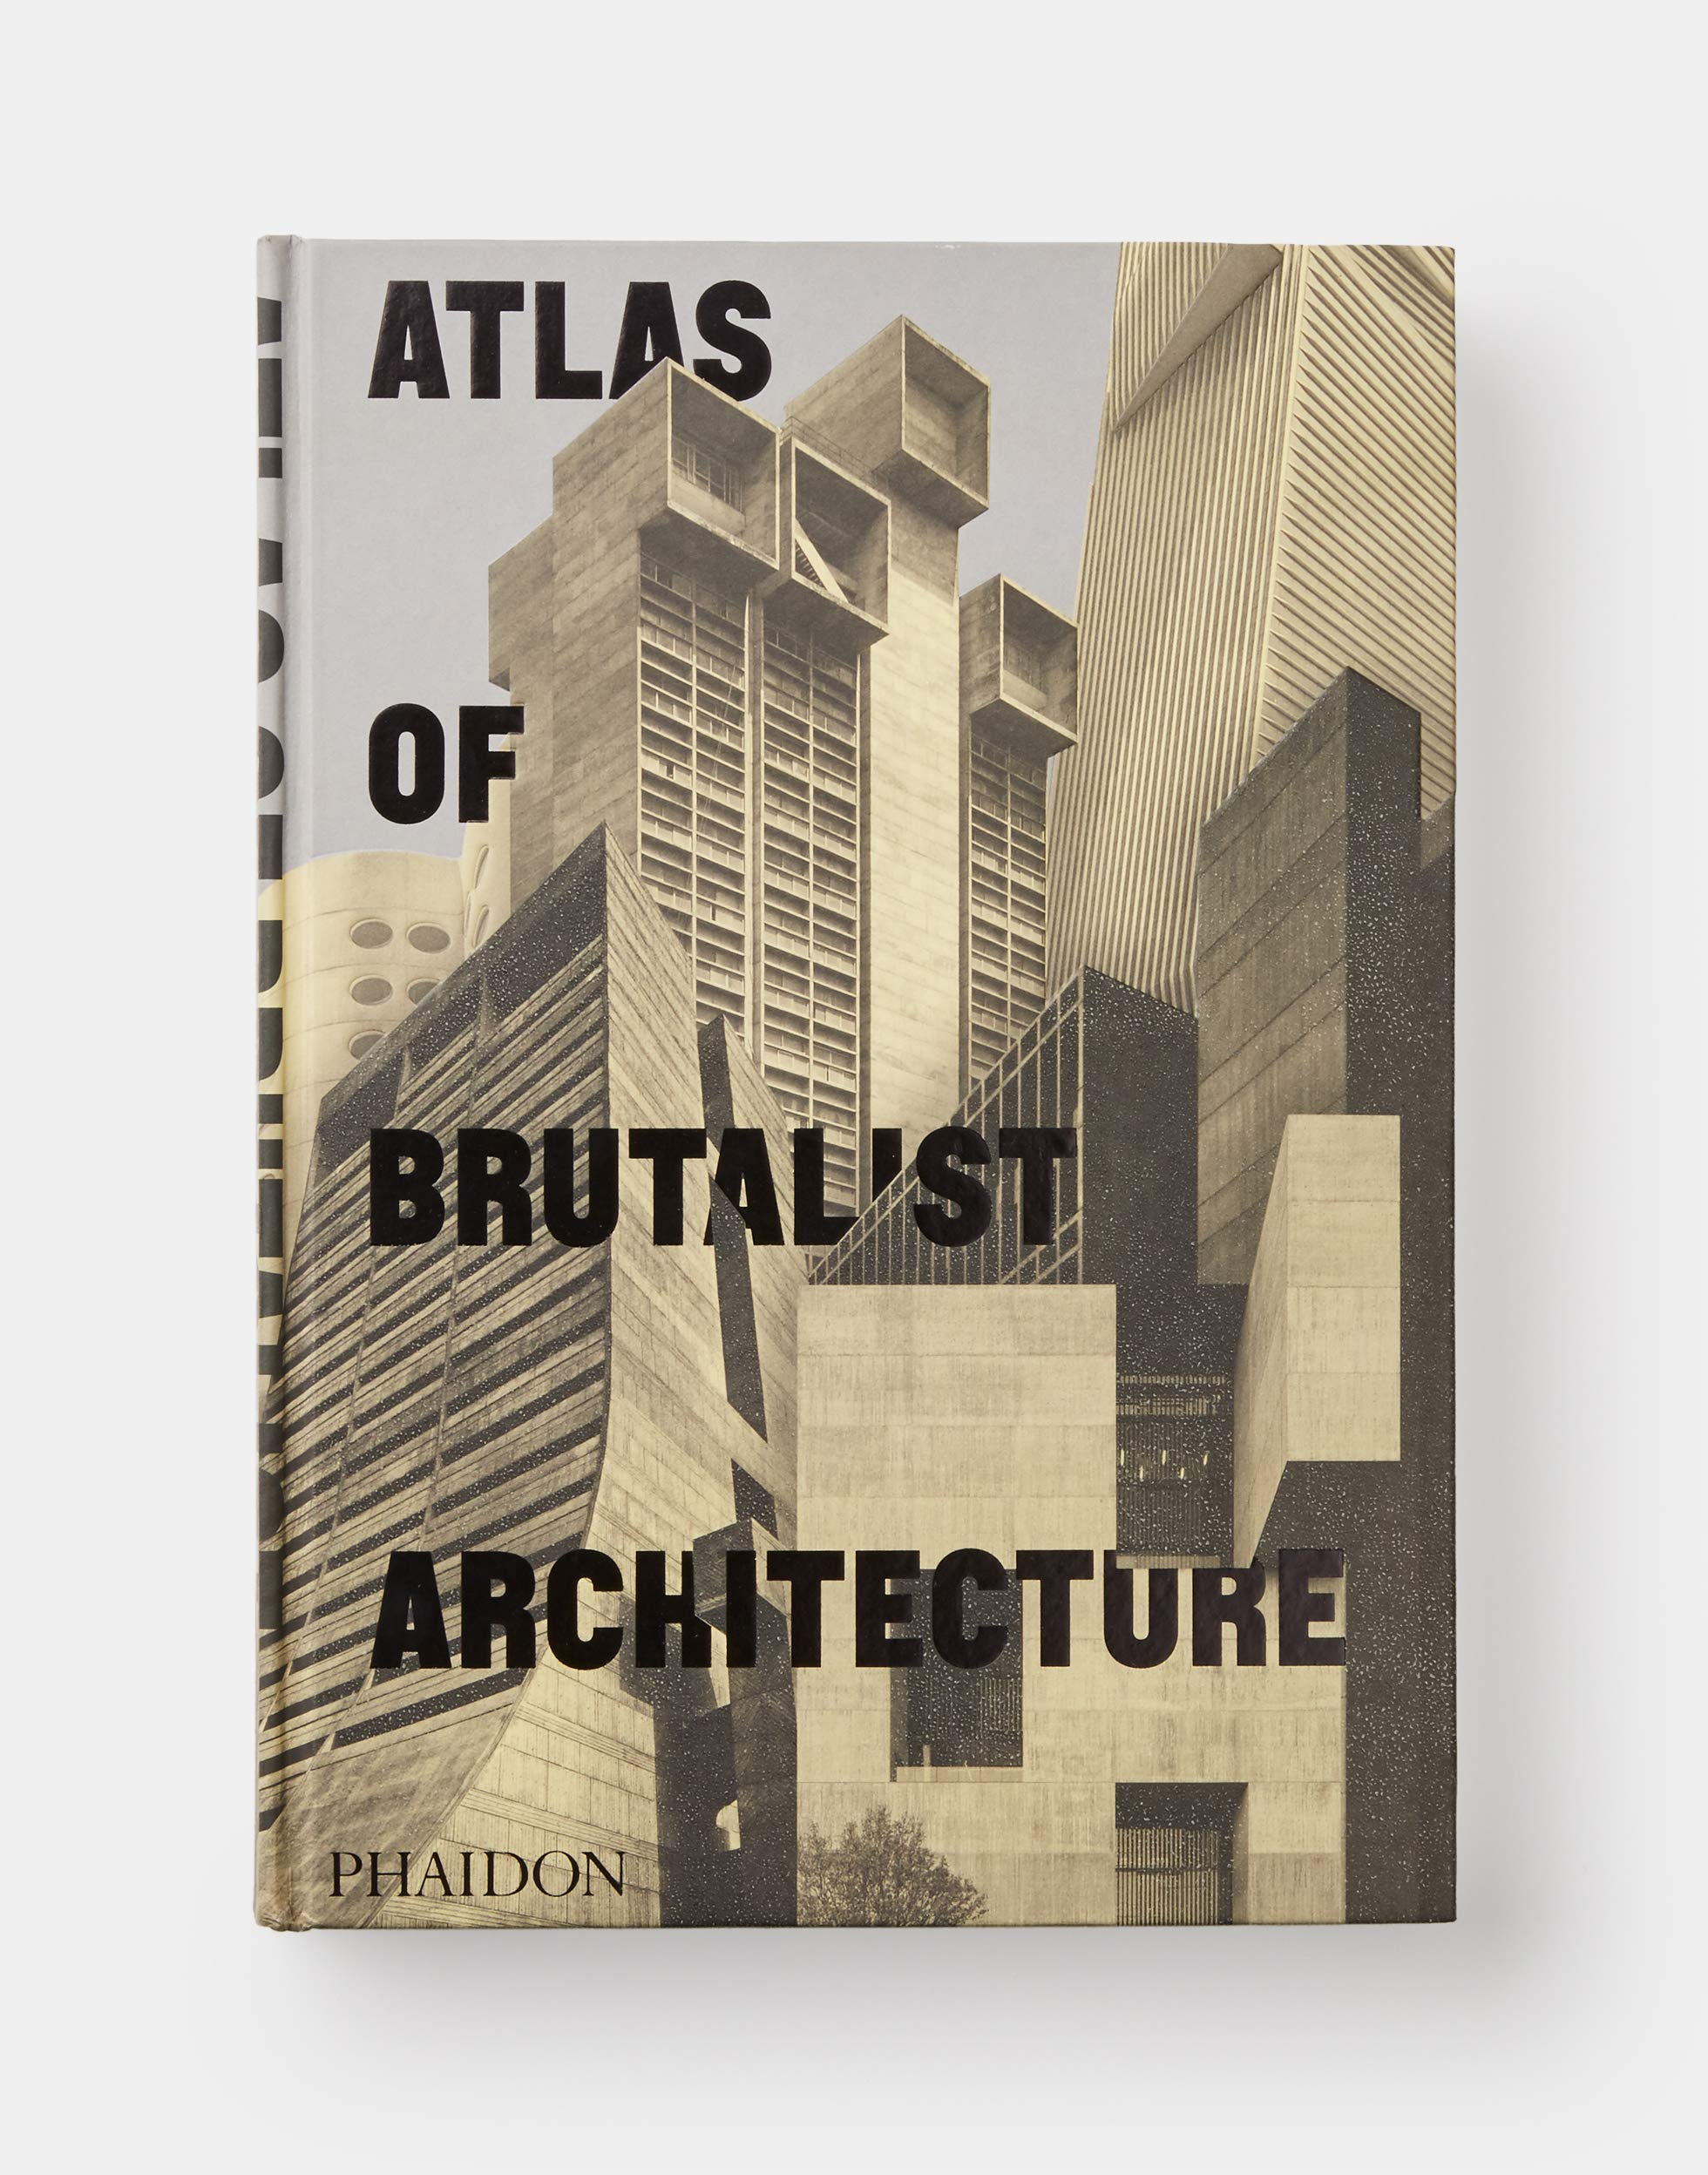 Atlas of Brutalist Architecture: The New York Times Best Art